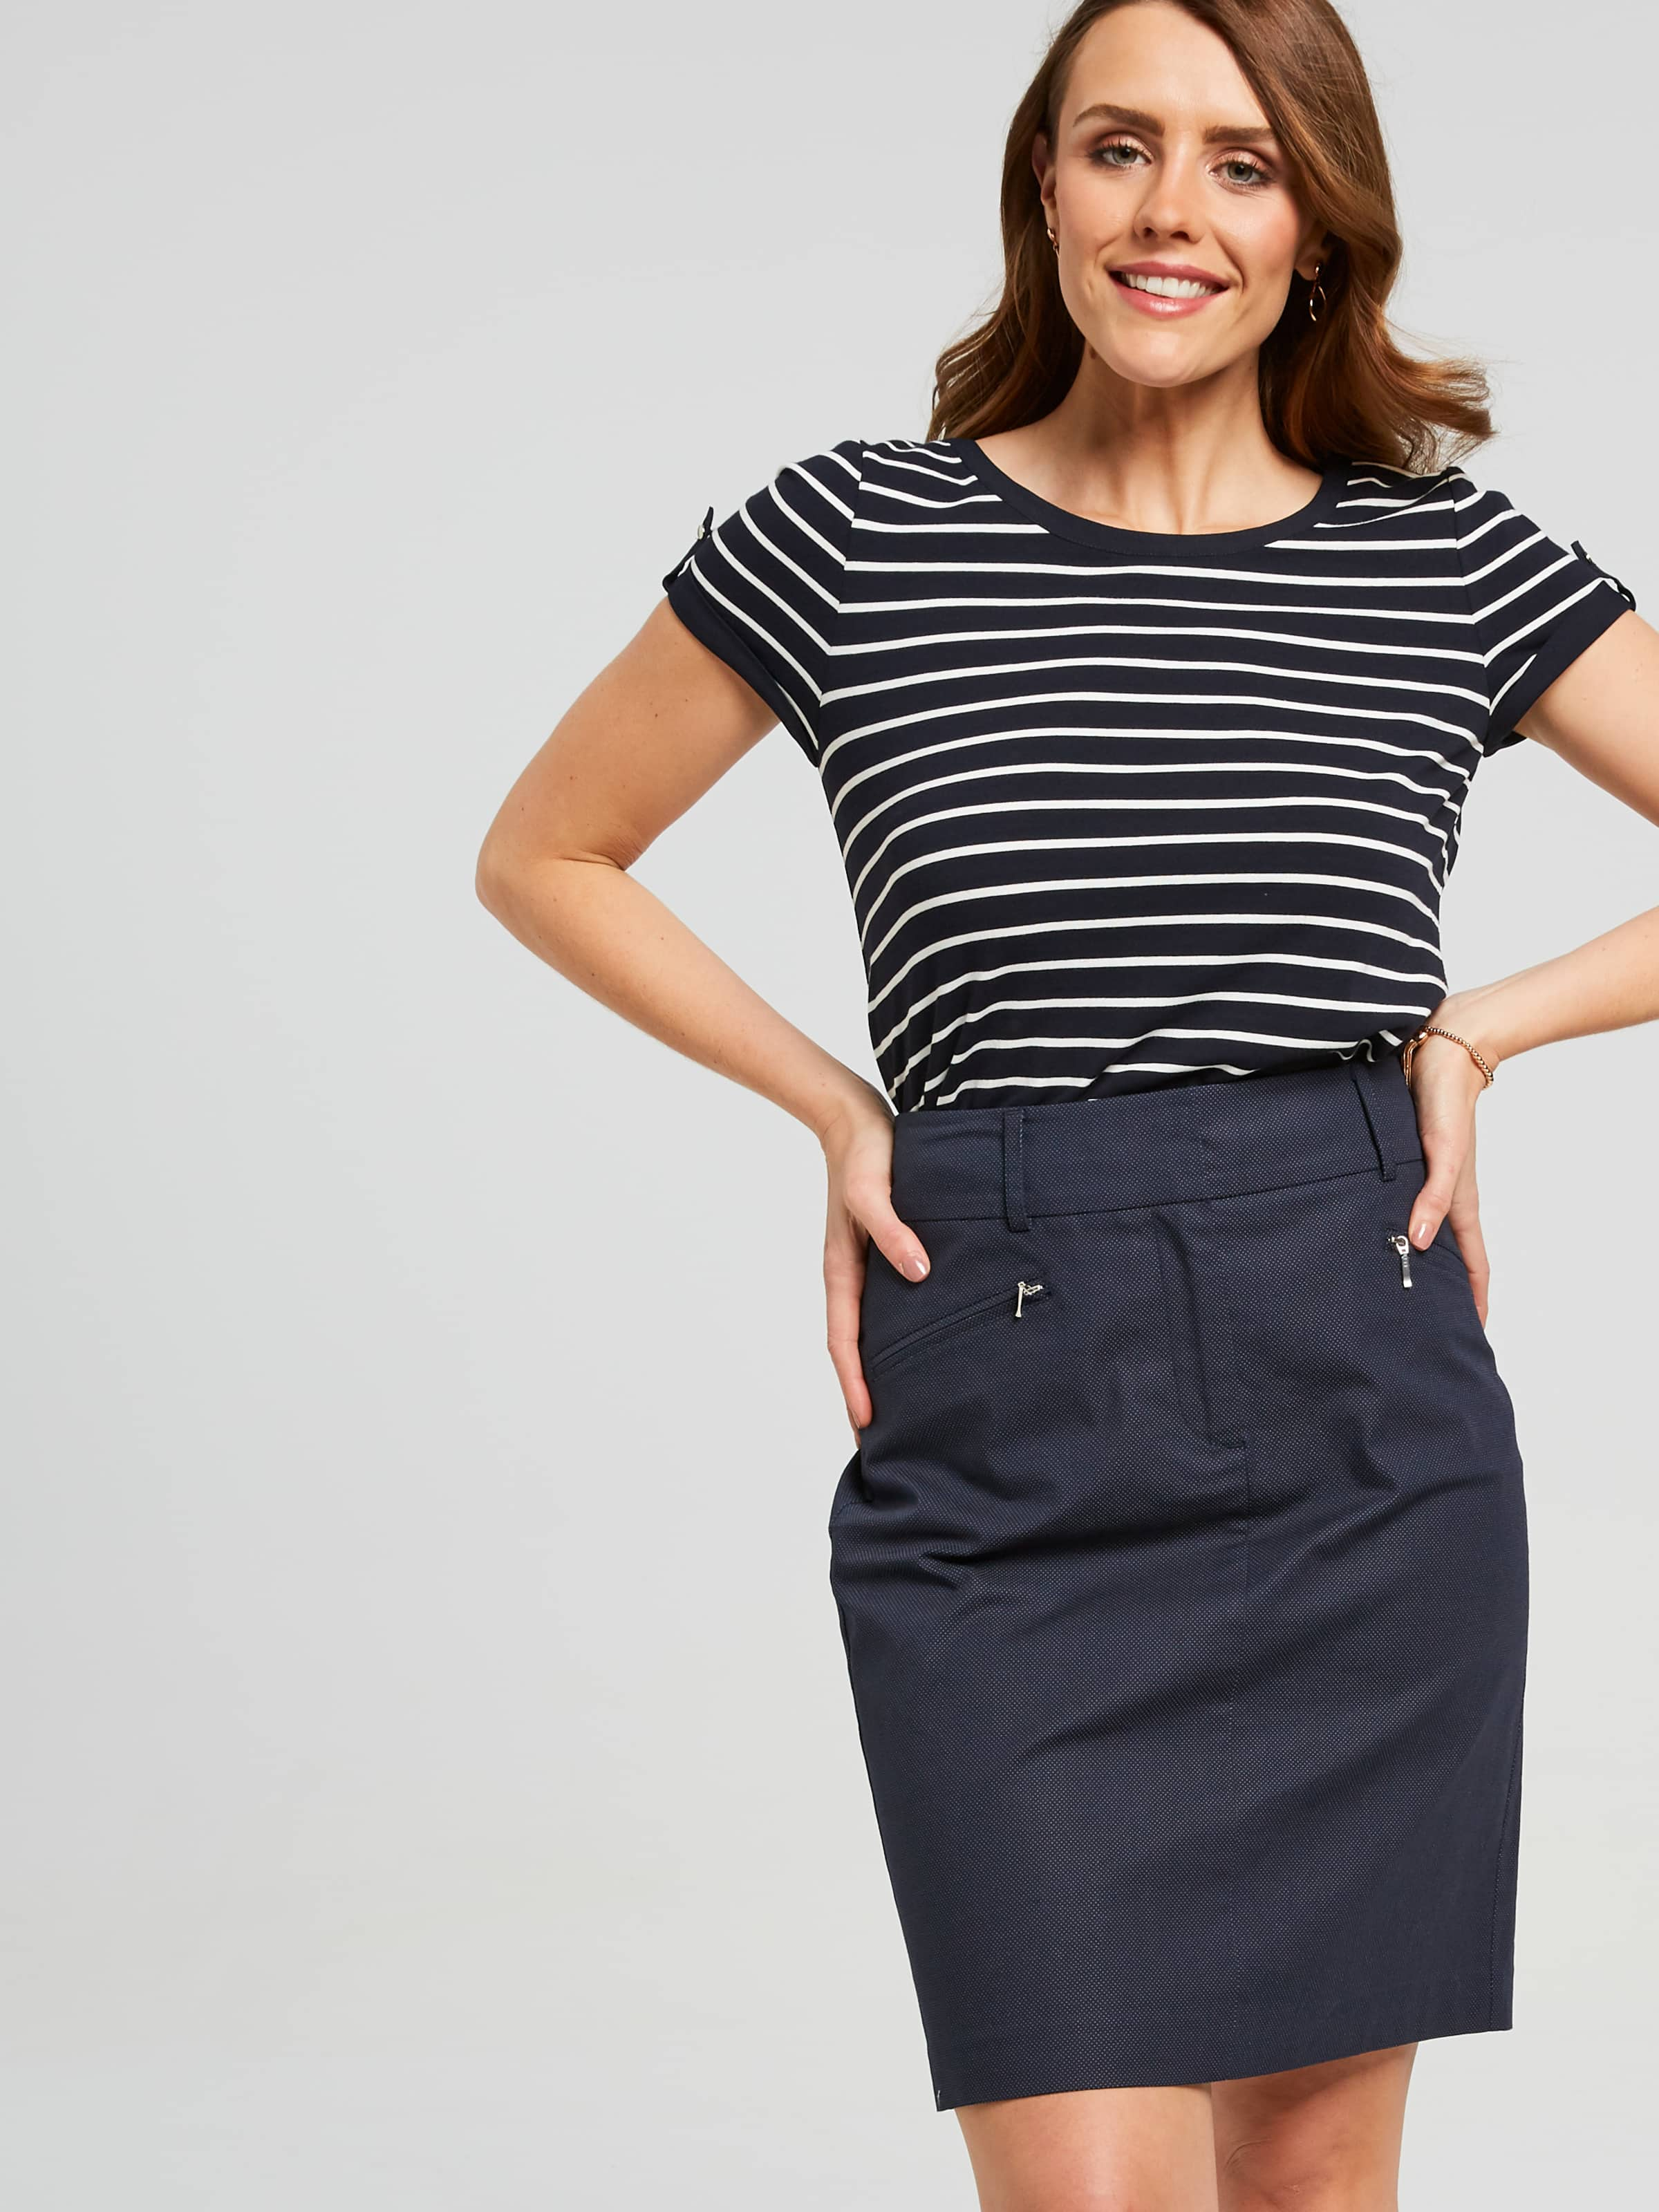 Our Oxford Golf Skirt In Allover Dobby Spot Will Finsih Off Your Casual Weekend Look. Style Back With A Casual Tee And A Cute Pair Ballerina Flats And Your Good To Go.(Navy Milk, 14)